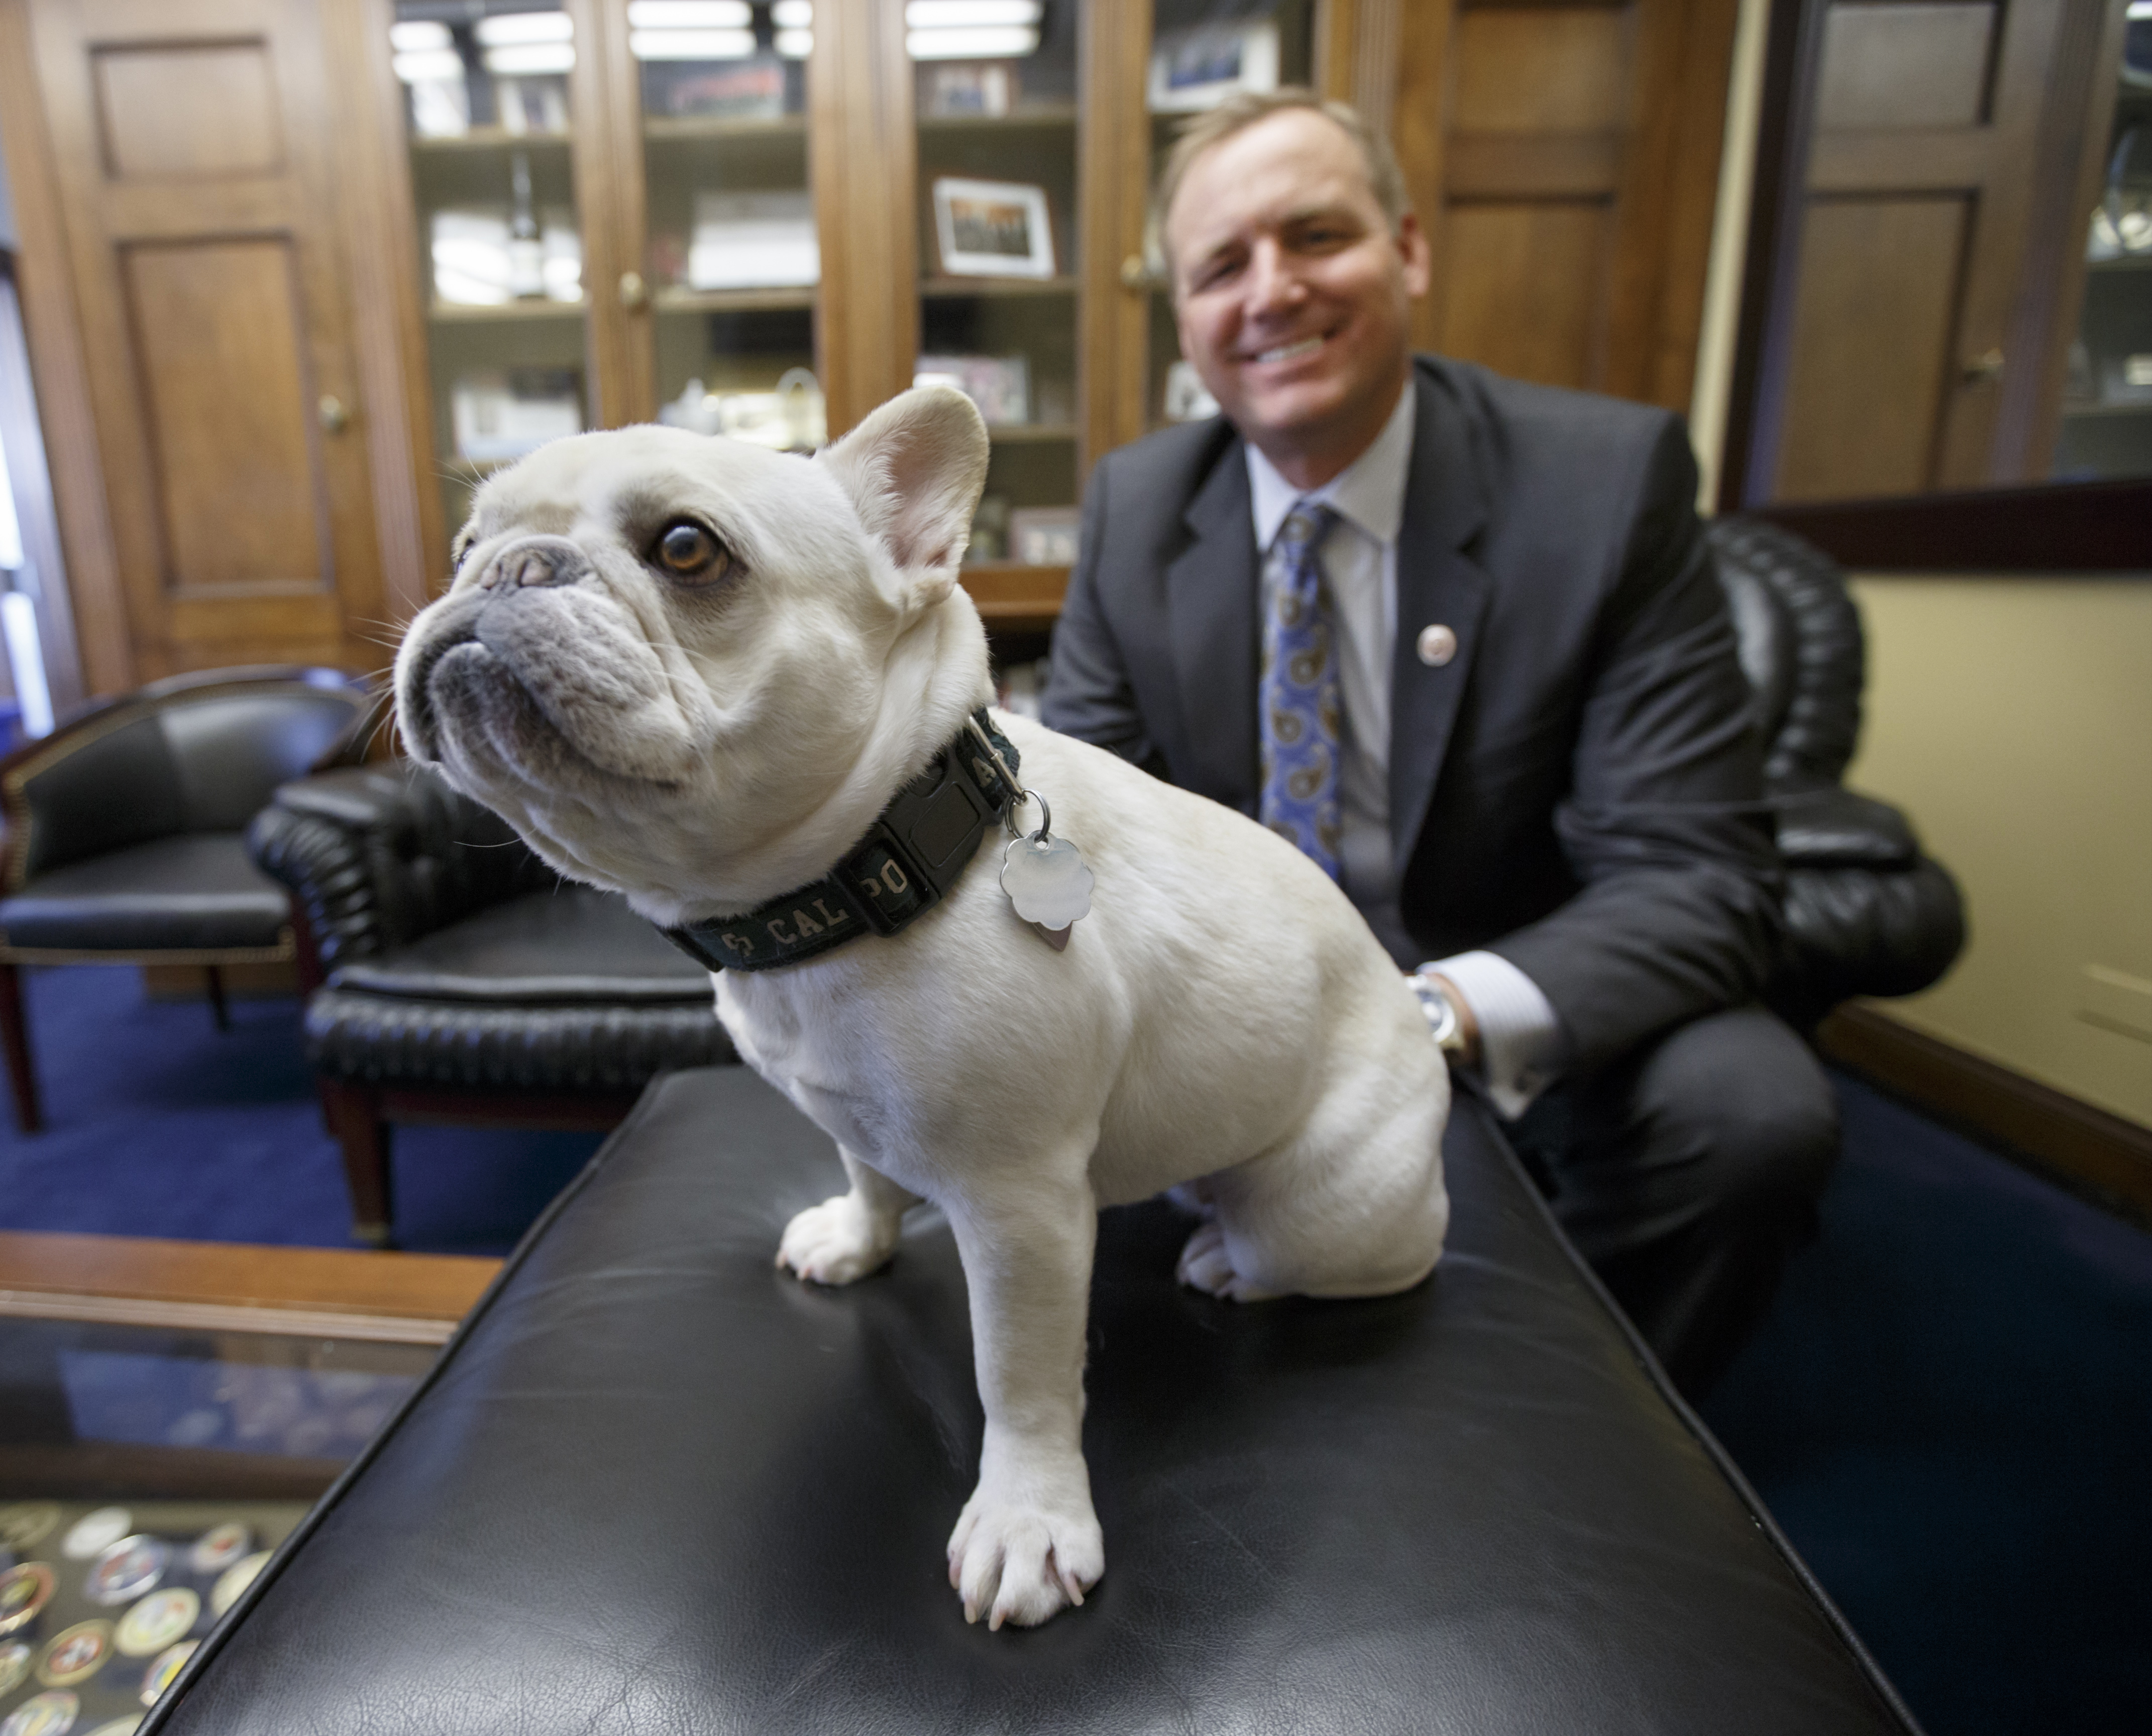 In this photo taken Feb. 11, 2015, Rep. Jeff Denham, R-Calif. poses with Lily, his 15-pound French bulldog in his office on Capitol Hill in Washington. It all began with Lily, a 15-pound snowball of a French bulldog with dark mahogany eyes, a wrinkly nose and a penchant for jumping on furniture and laps so that she can get closer to her many human visitors. She and her owner, Rep. Jeff Denham of California, take the occasional coast-to-coast plane ride together. But when he tried to take her on Amtrak a couple years back, he learned that only service dogs were allowed aboard. It's a policy he's been trying to change ever since, and he appears to be gaining momentum.  (AP Photo/J. Scott Applewhite)